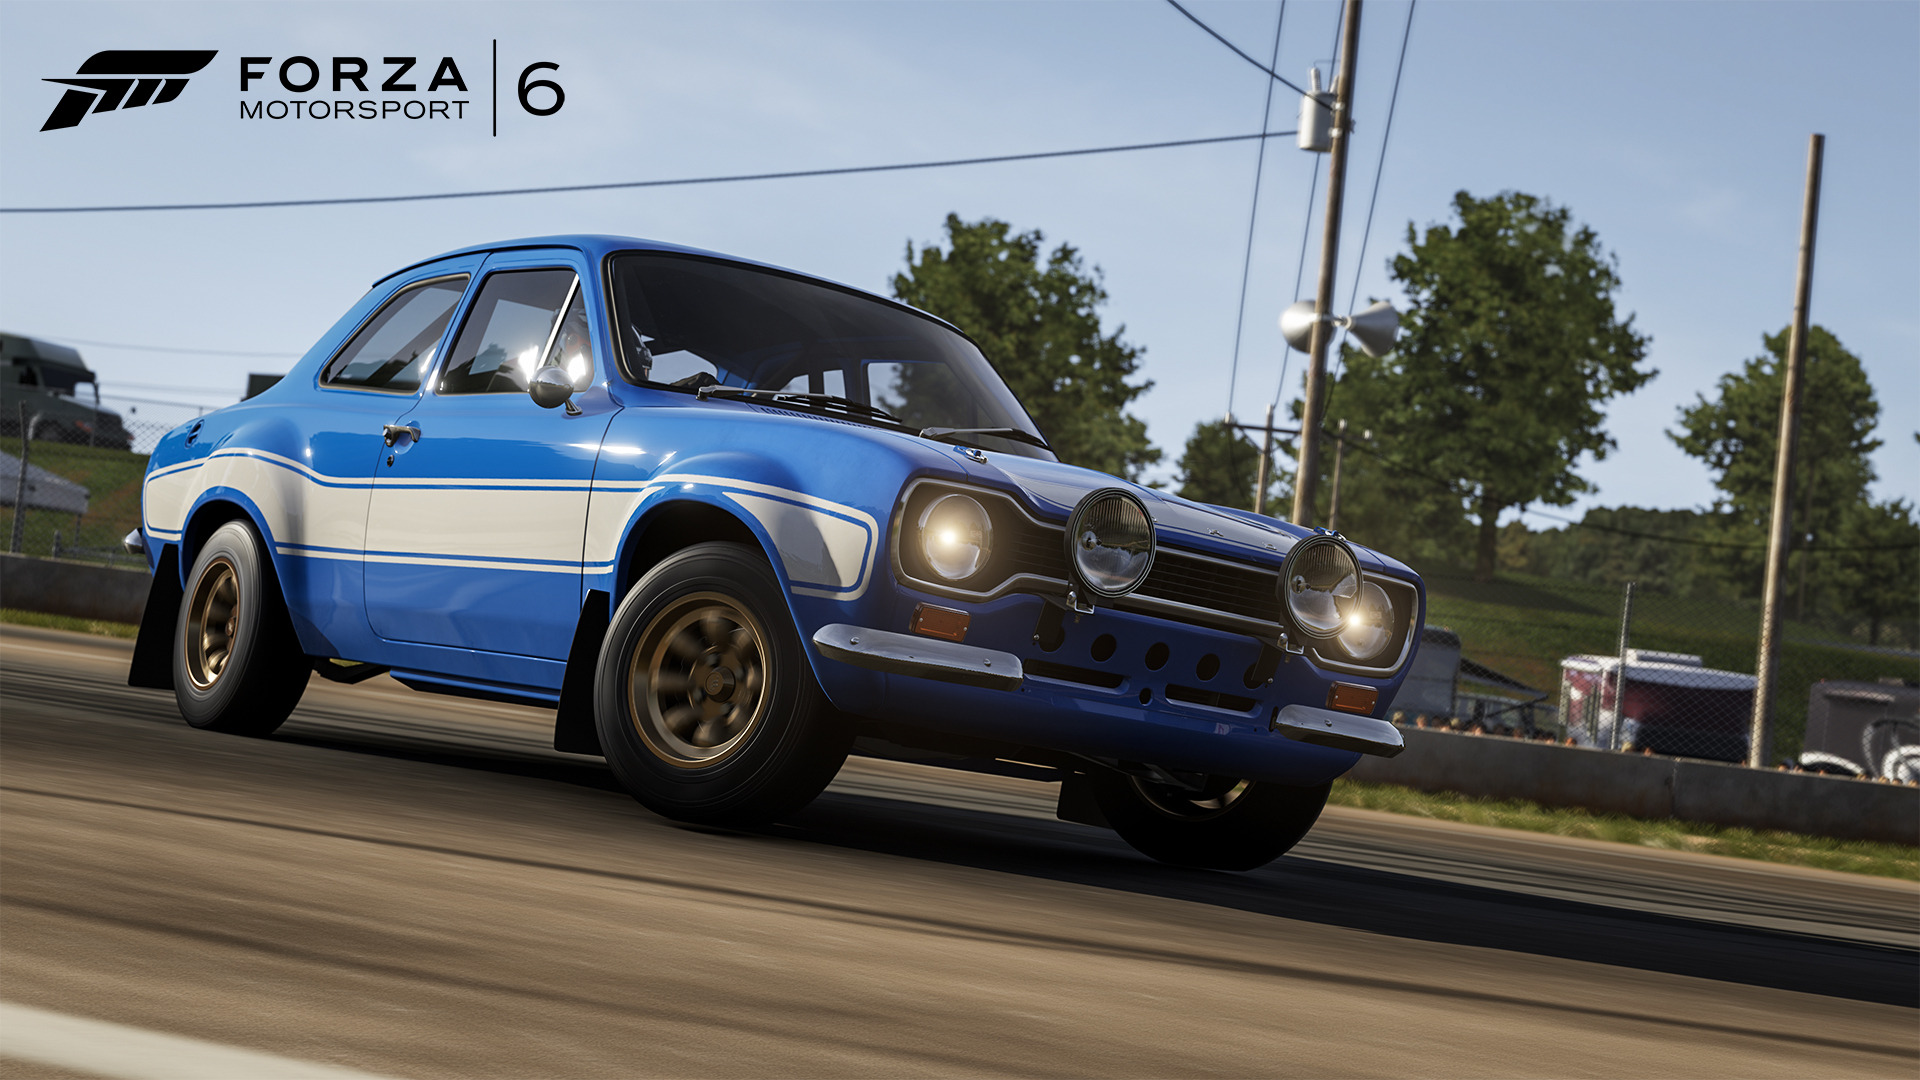 Ford Escort RS1600 Fast & Furious Edition